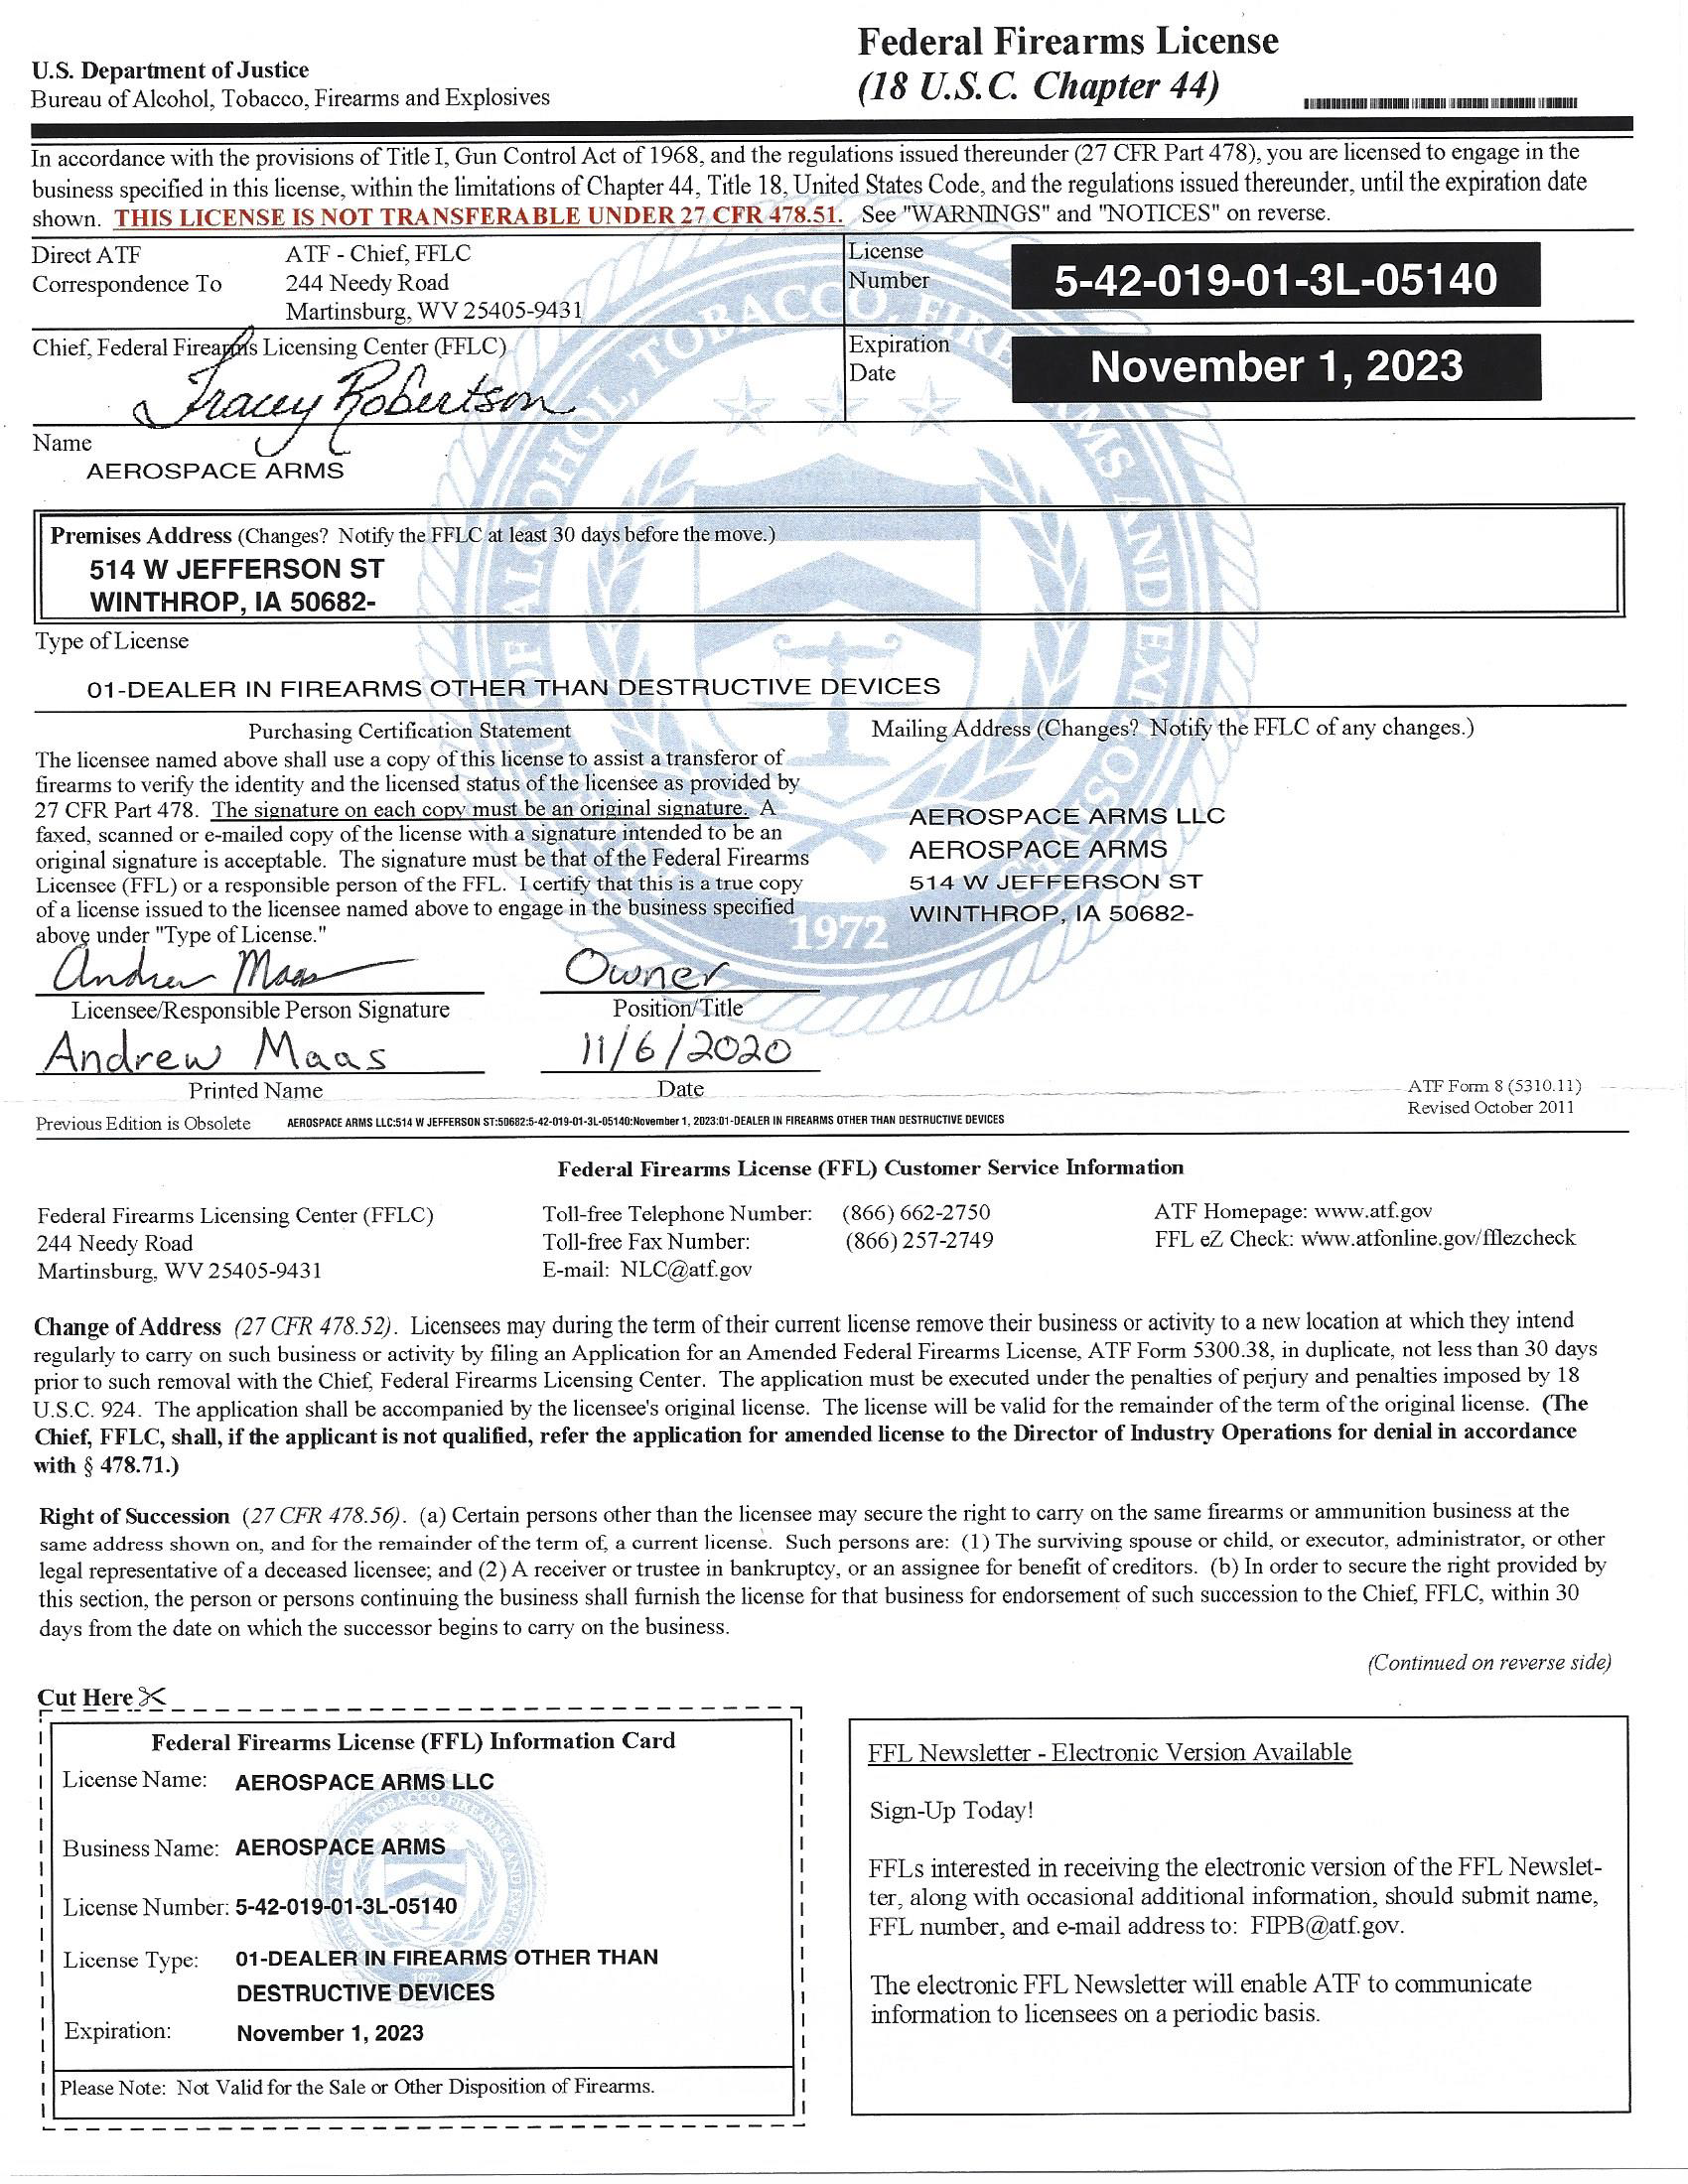 aerospace-arms-ffl-atf-form-8.png